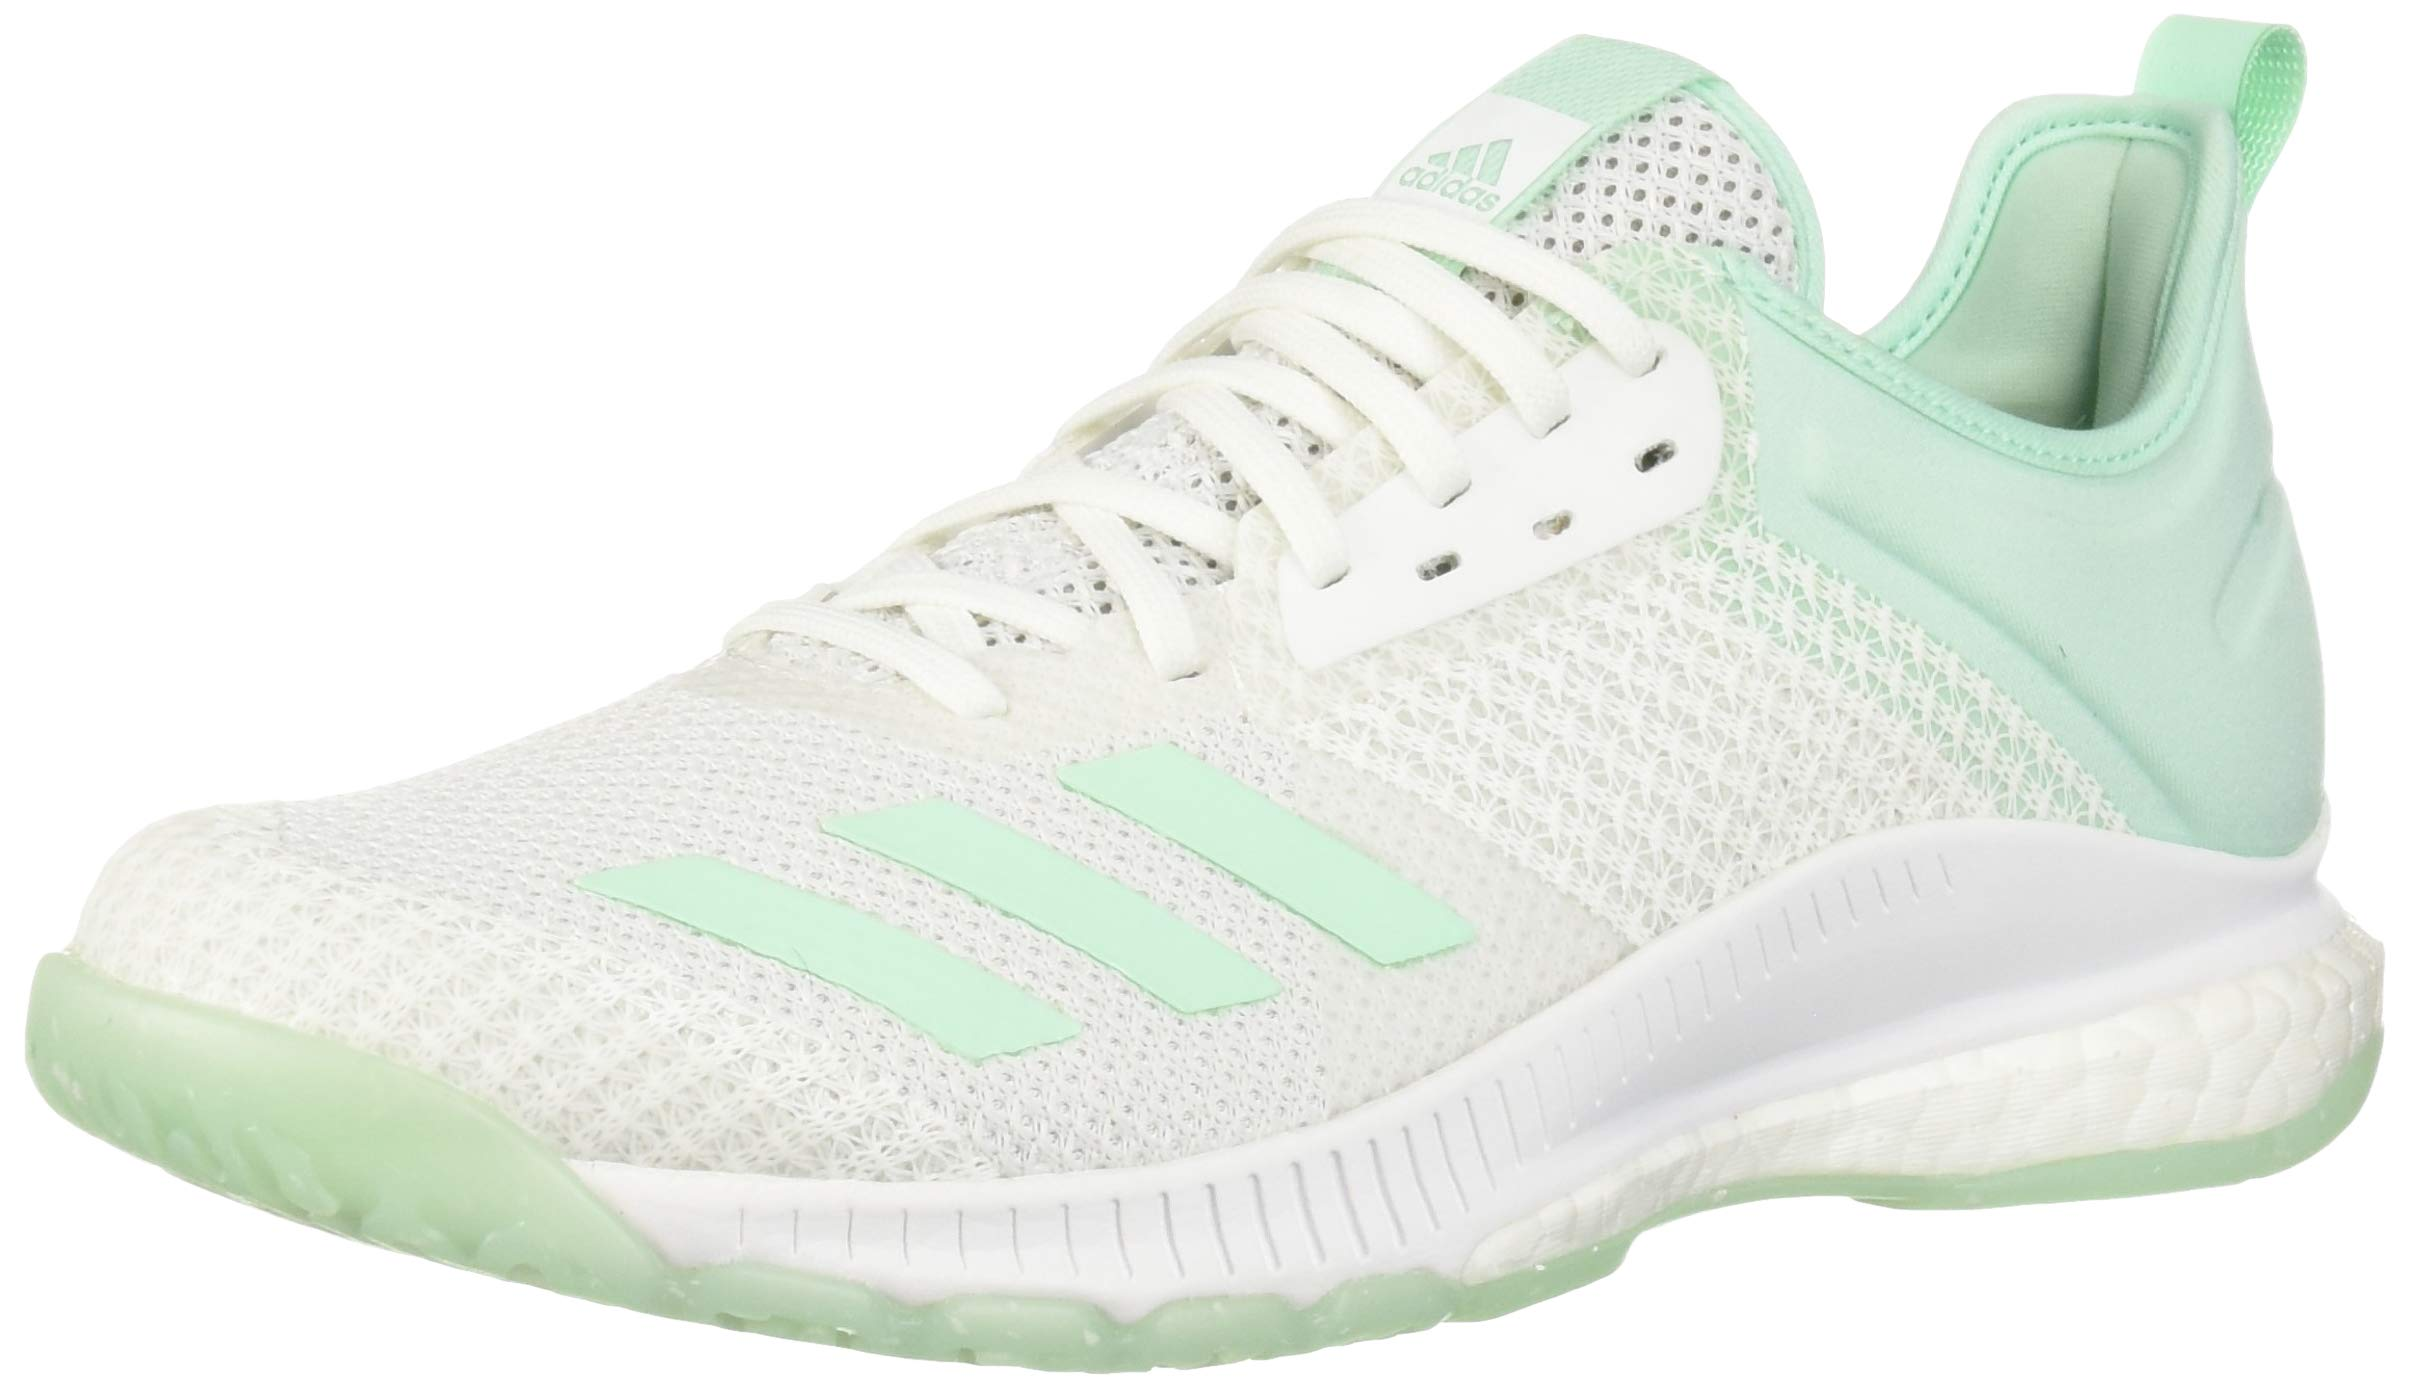 adidas Women's Crazyflight X 3 Parley Shoes, White Clear Mint, 9 M US